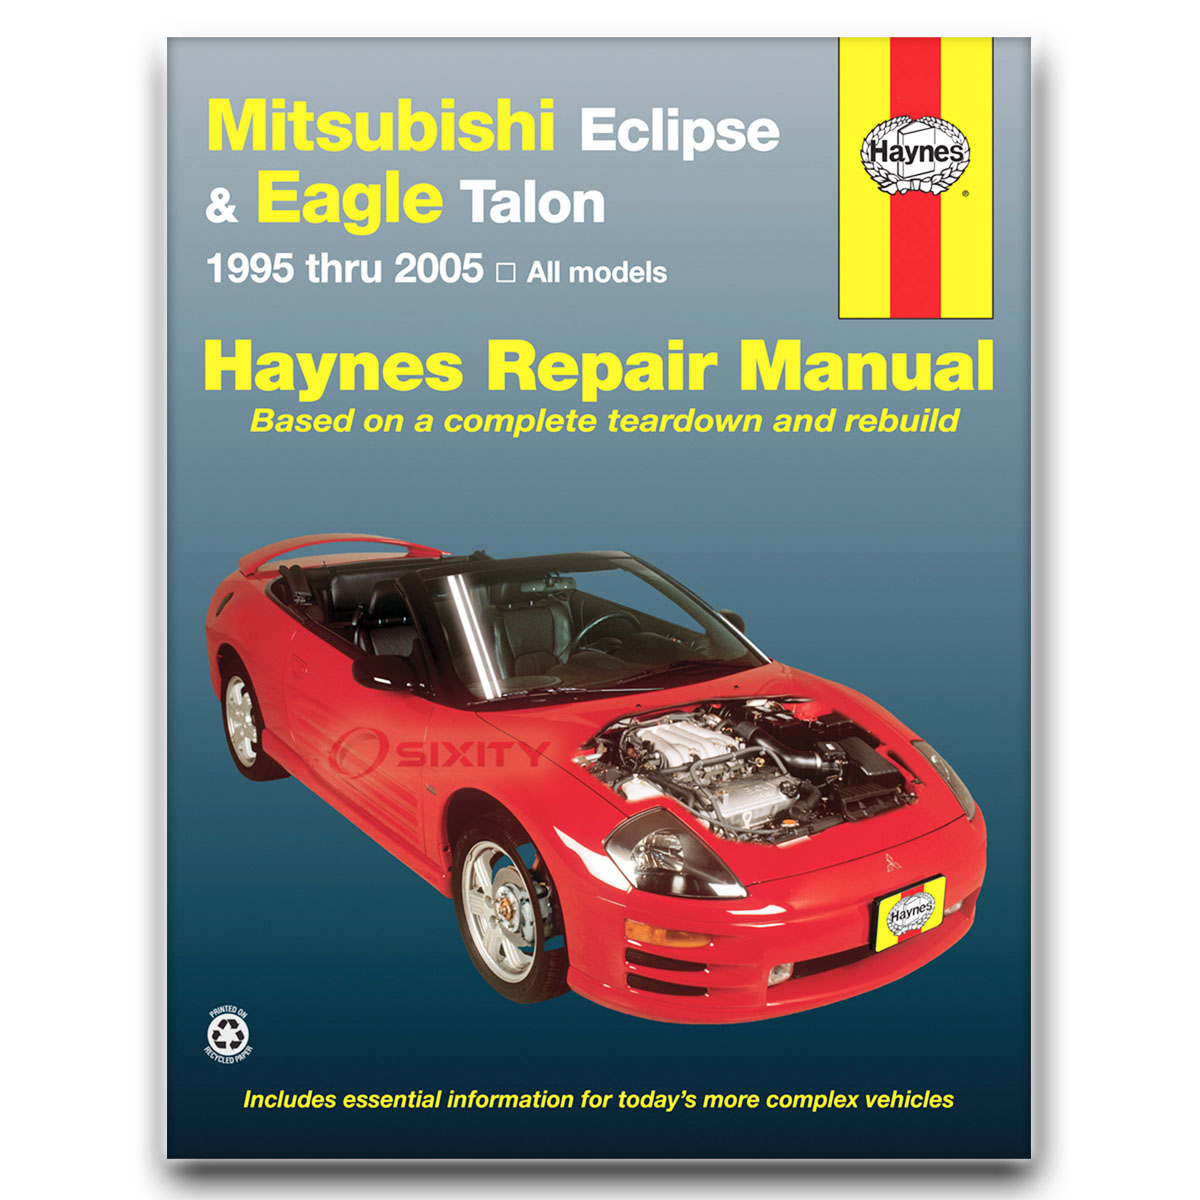 Eclipse Gst Wiring Harness : Mitsubishi eclipse haynes repair manual gst gt gsx rs